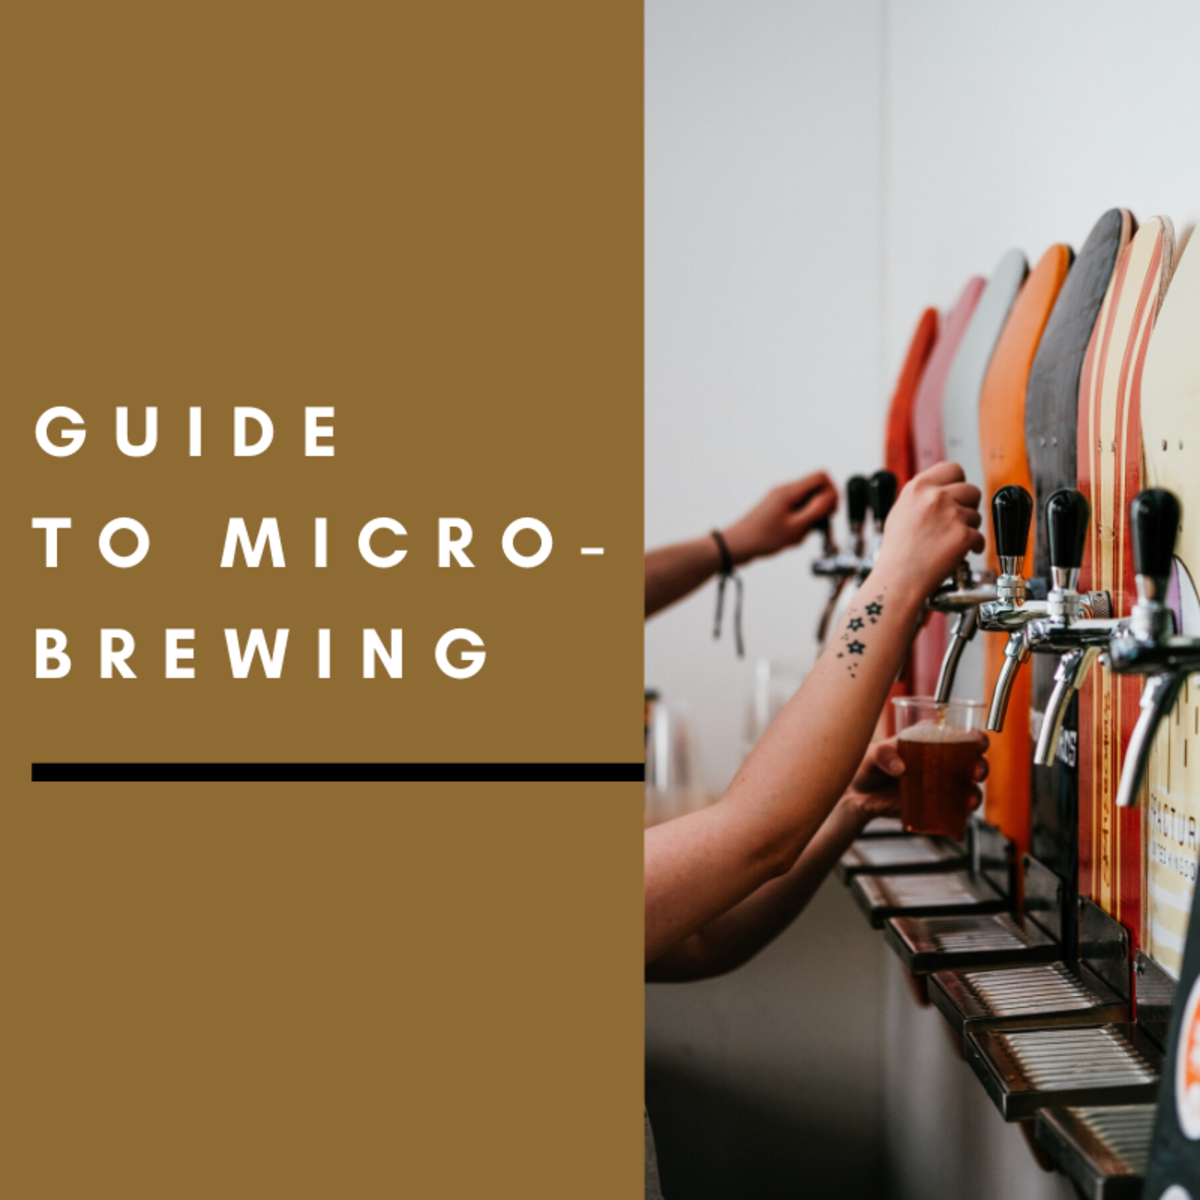 Micro-brewing has become a popular hobby for many.